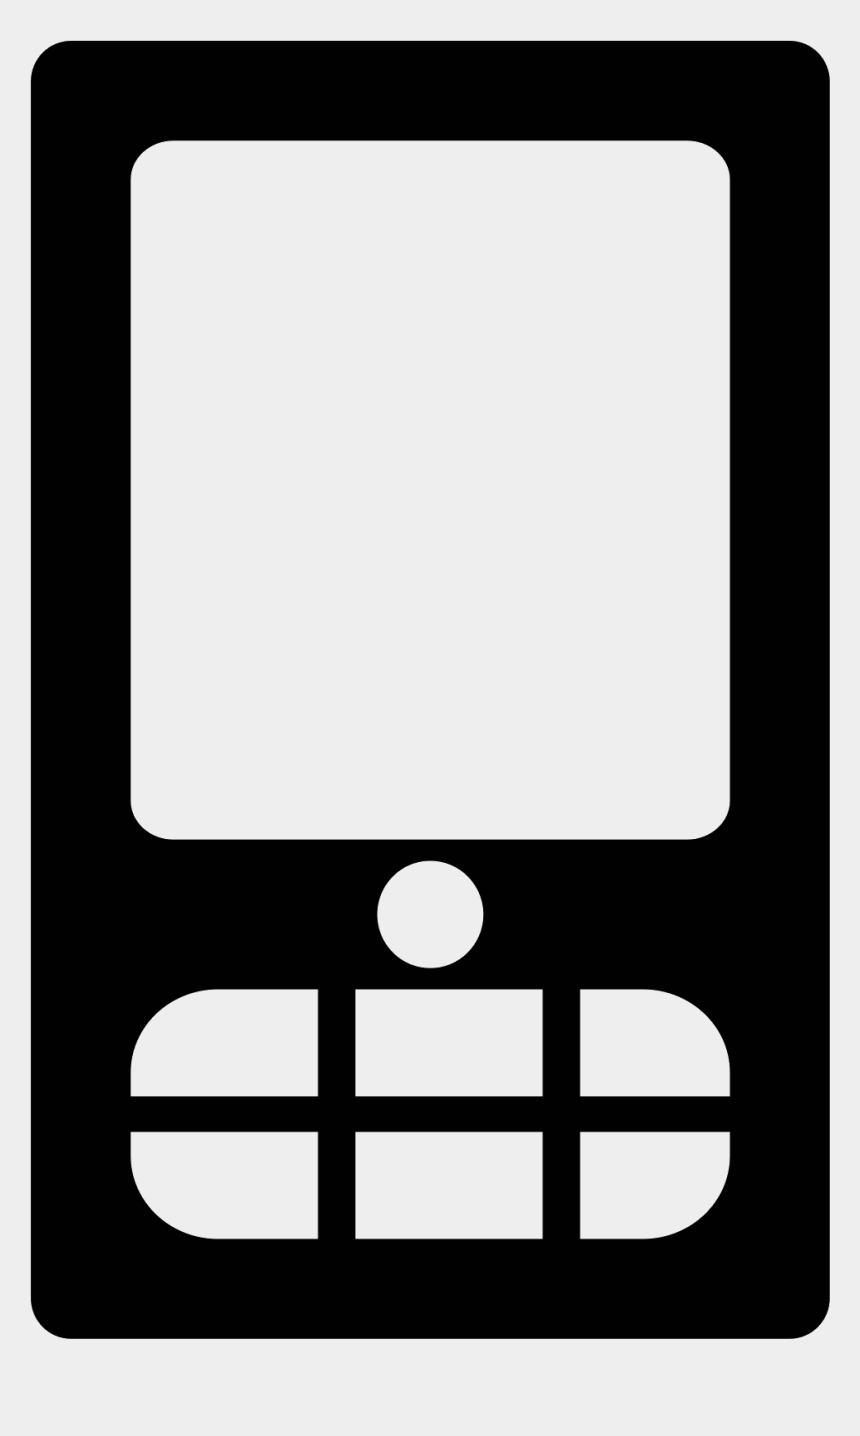 smartphone clipart, Cartoons - Smartphone Clipart Mobile Icon - Mobile Icon In Png